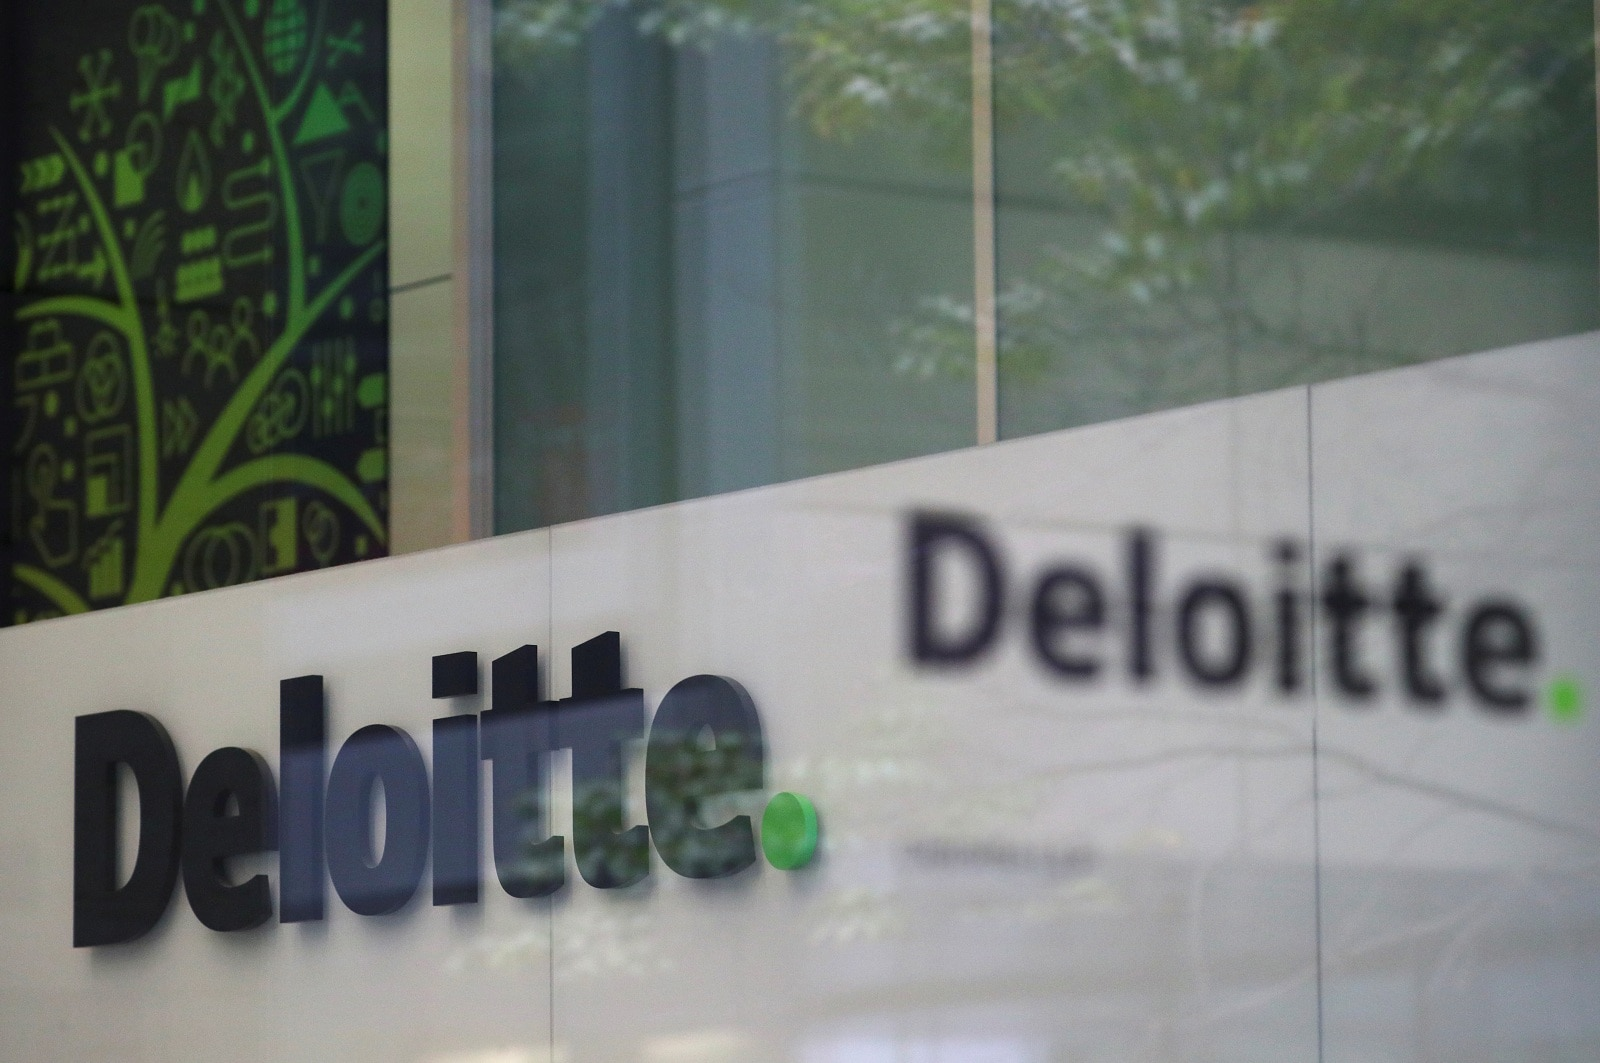 Deloitte- Deloitte Services LP was founded in 2000. The company's line of business includes providing accounting, bookkeeping, and related auditing services.